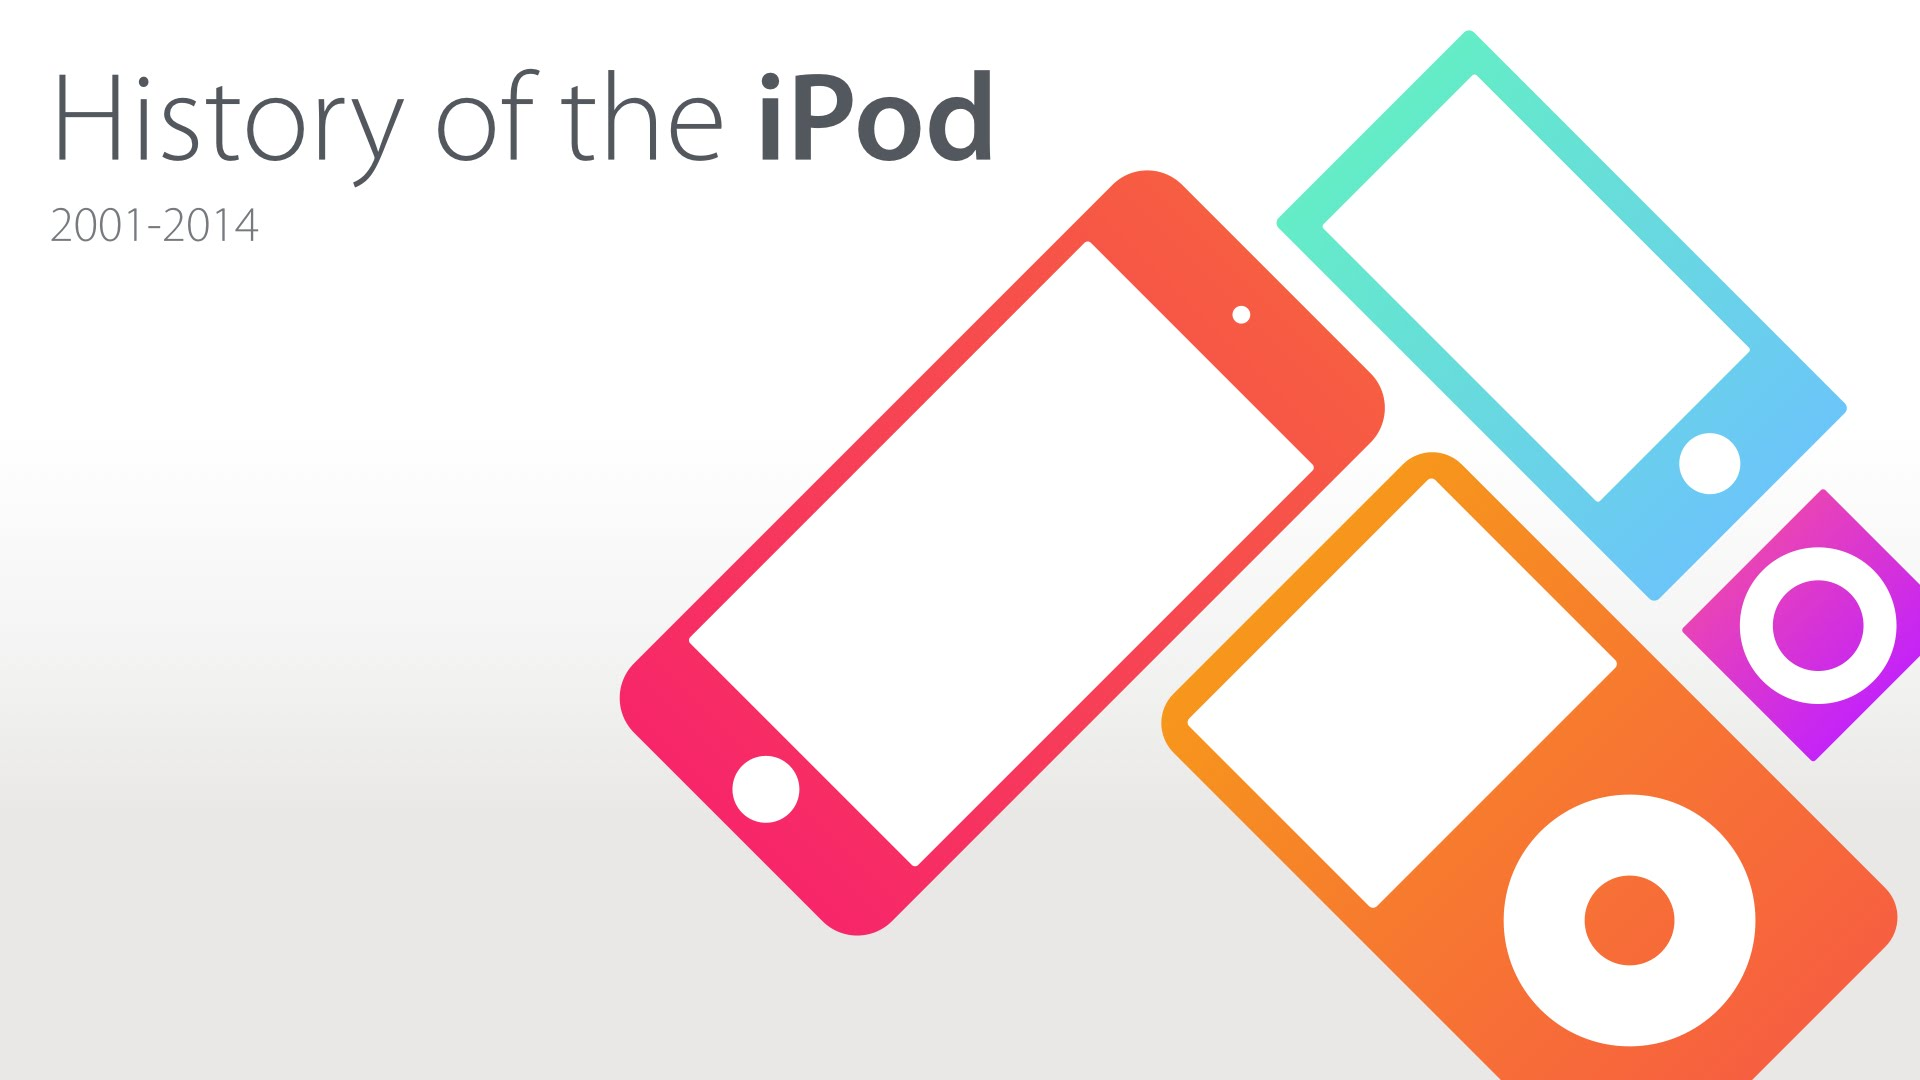 a history of ipod The history of itunes begins in 2001 and continues to the present initially conceived as a simple music player, over time itunes developed into a sophisticated.